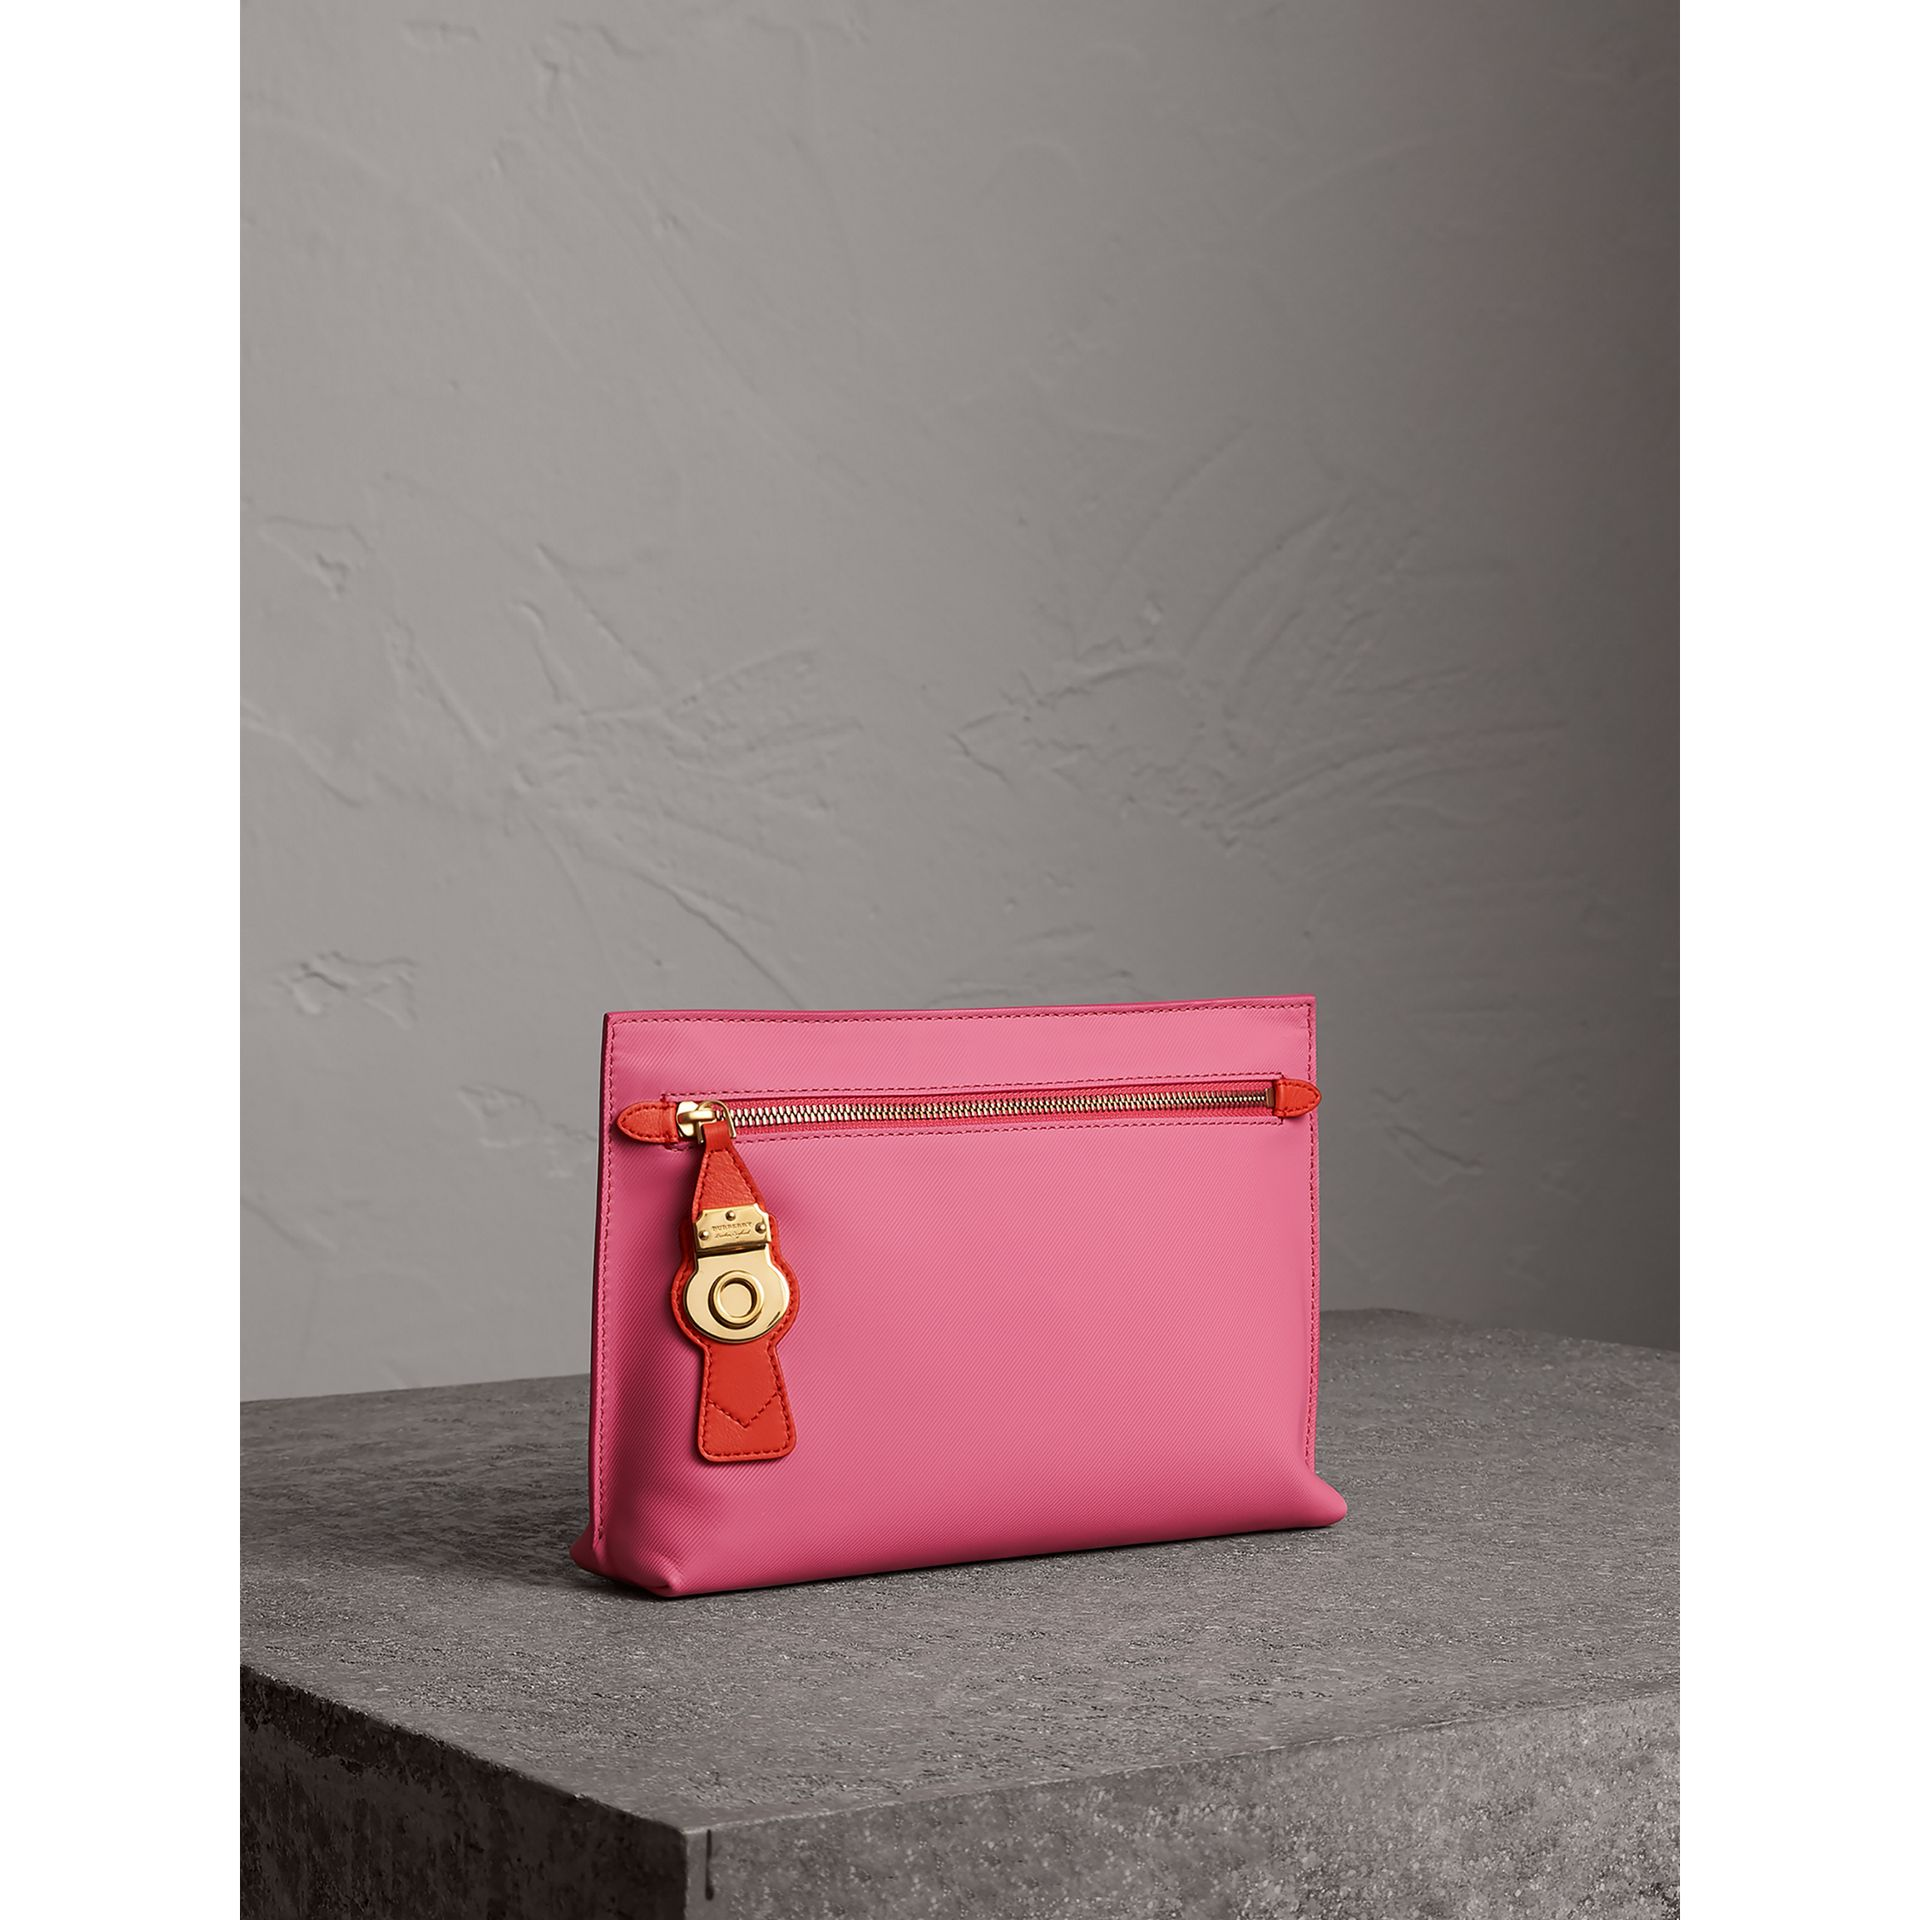 Two-tone Trench Leather Wristlet Pouch in Rose Pink - Women | Burberry Canada - gallery image 4